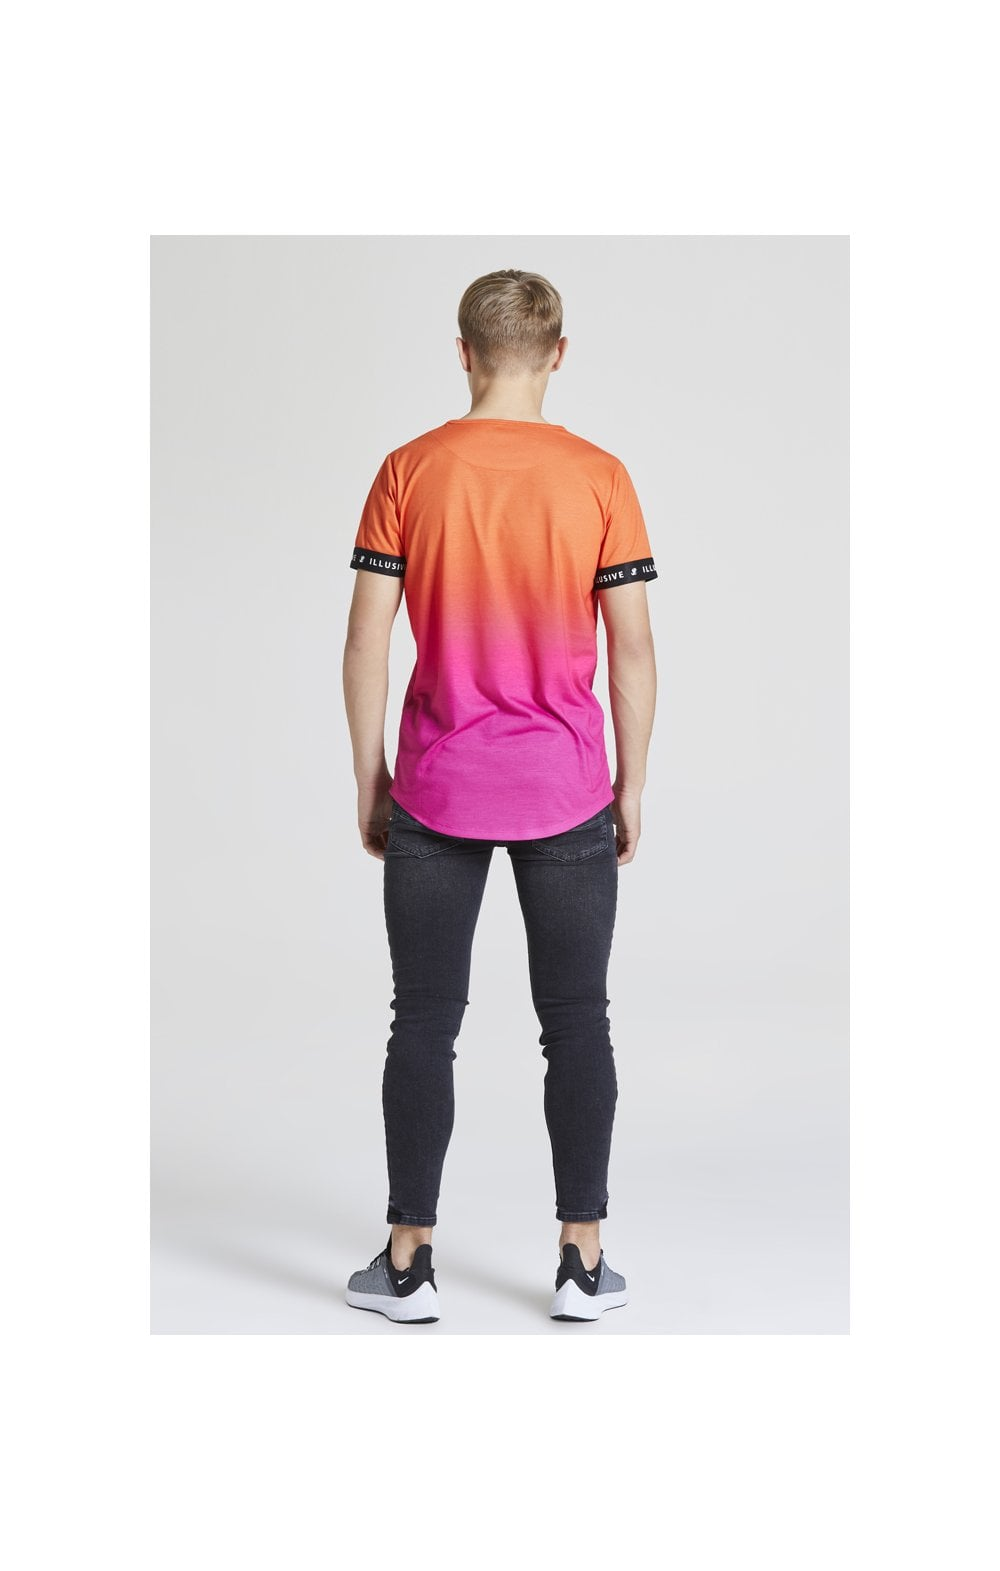 Illusive London Sbiadito T-Shirt 'Tech' - Arrancia & Rosa (4)